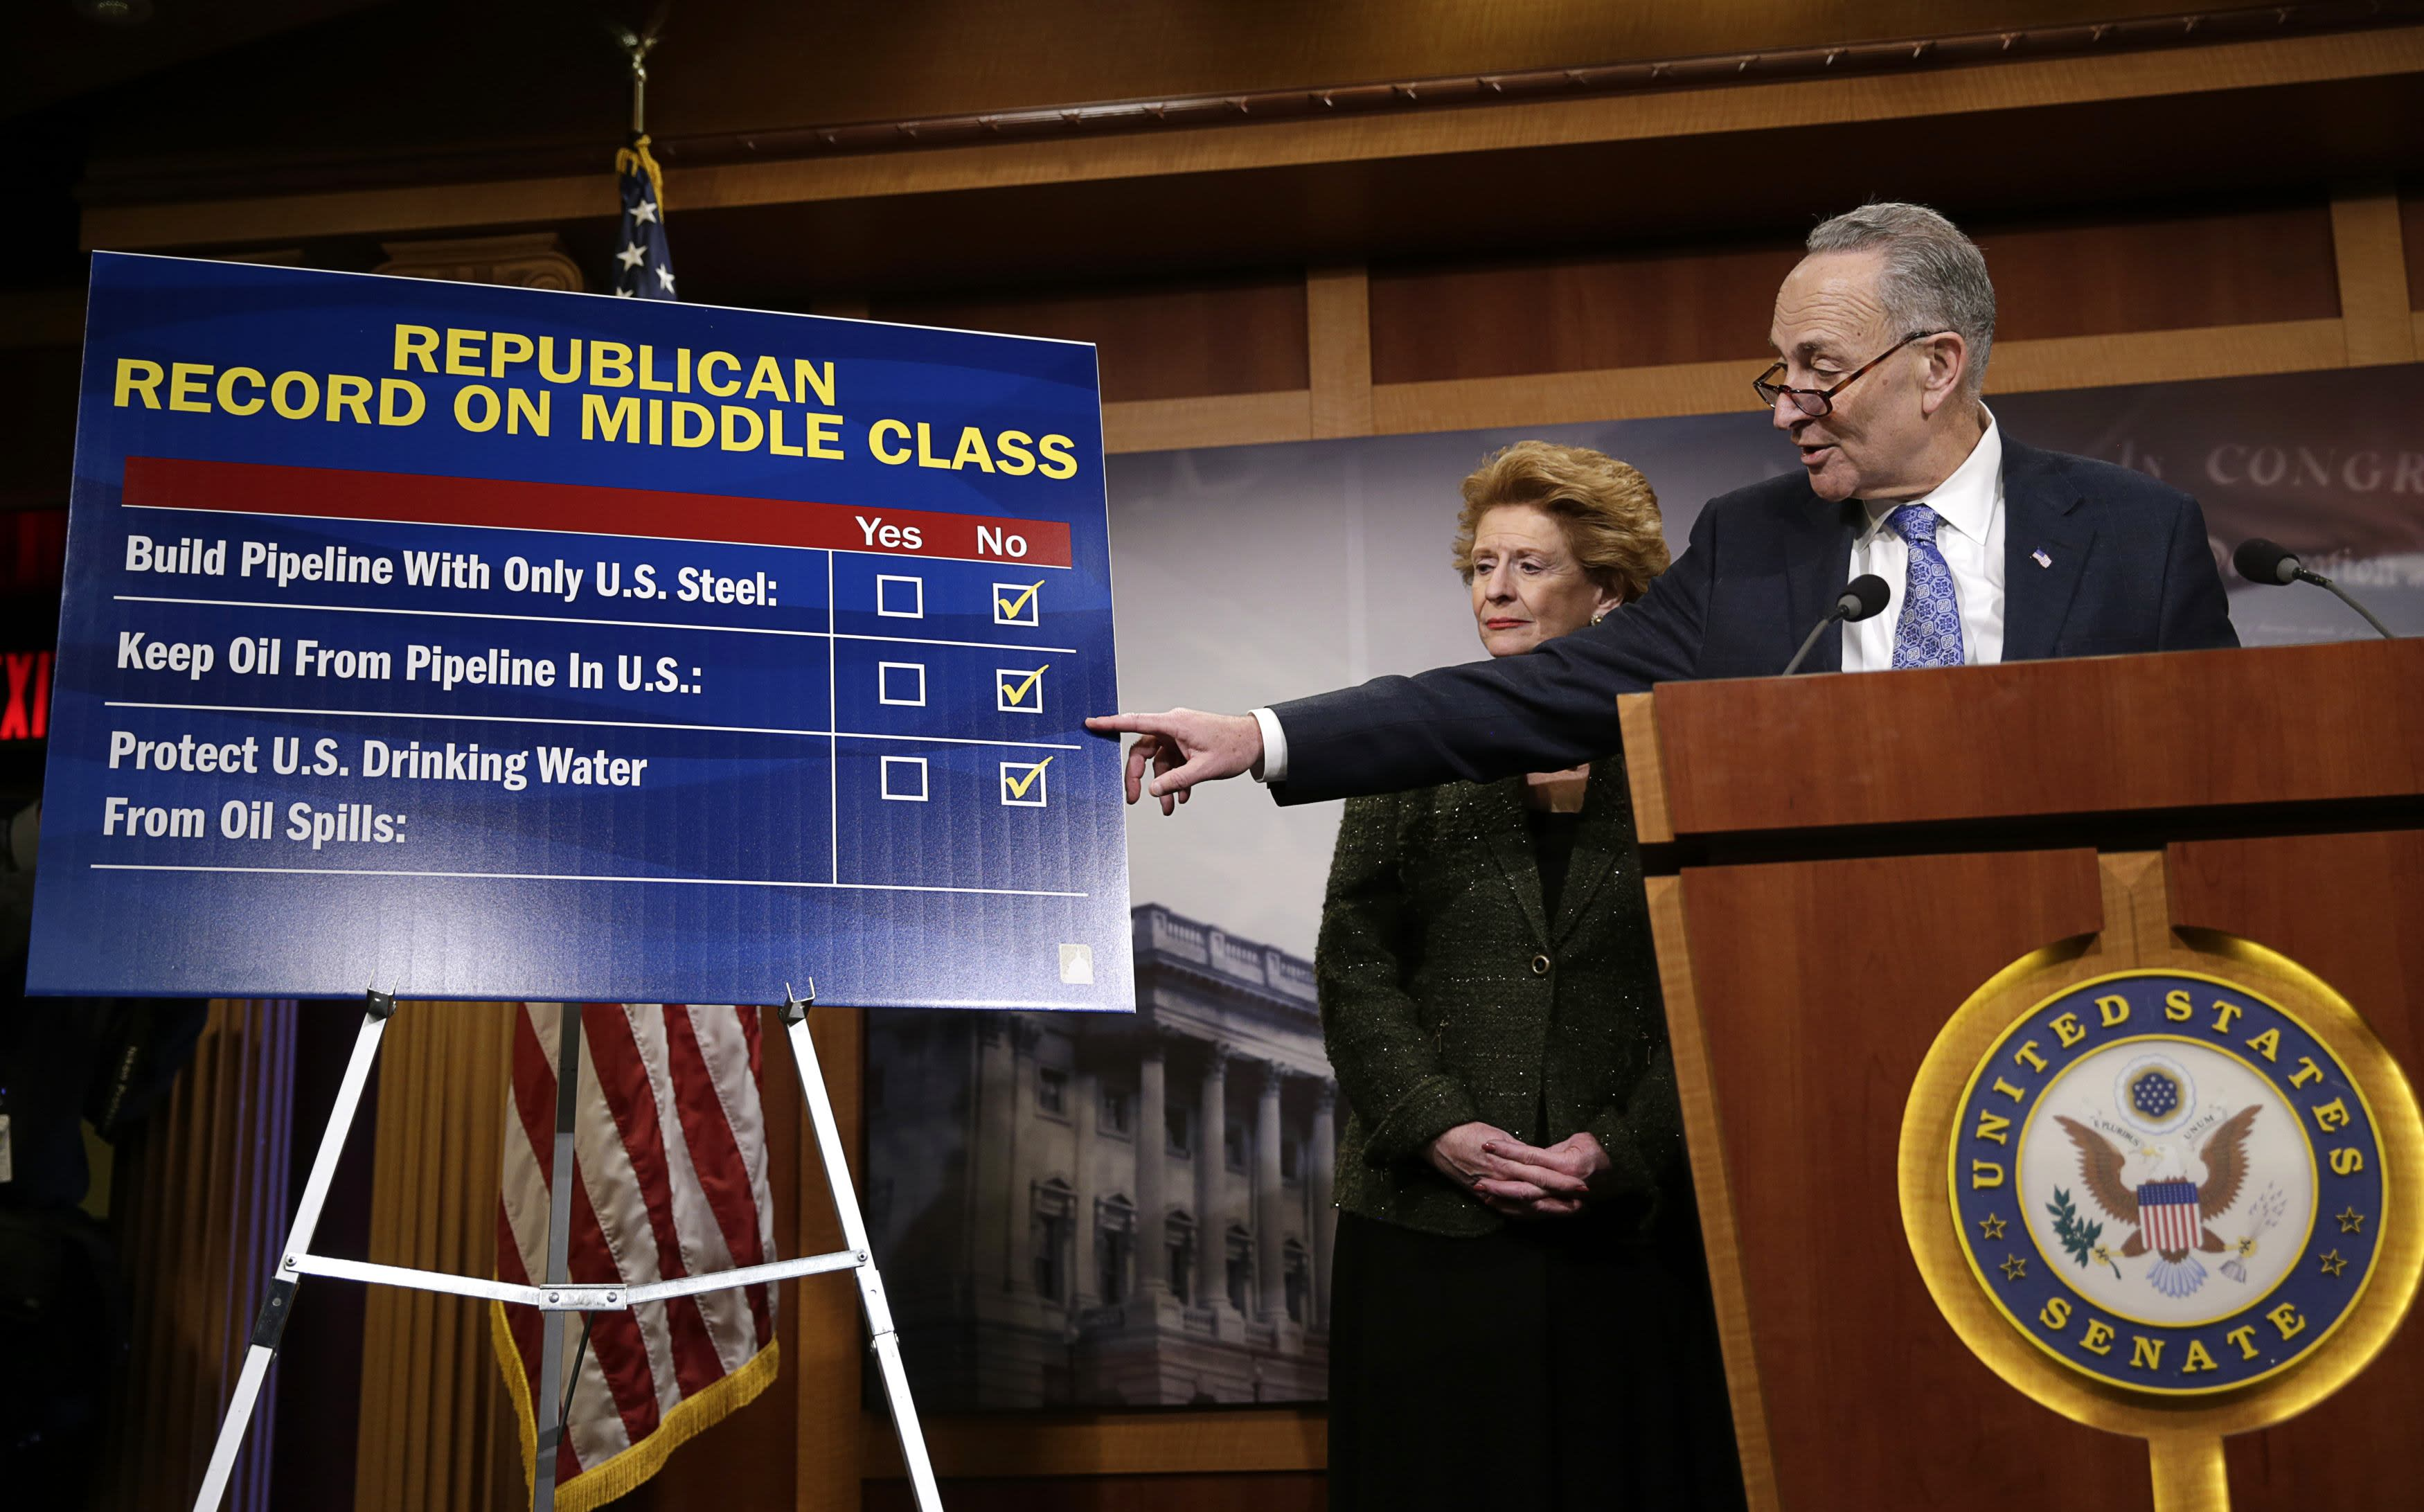 U.S. Senator Chuck Schumer (D-NY) (R) and Senator Debbie Stabenow (D-MI) (L)respond to Republicans at a Democrat response news conference after voting on amendments on the Keystone XL pipeline bill on Capitol Hill in Washington January 29, 2015. REUTERS/Gary Cameron (UNITED STATES - Tags: POLITICS ENVIRONMENT ENERGY)